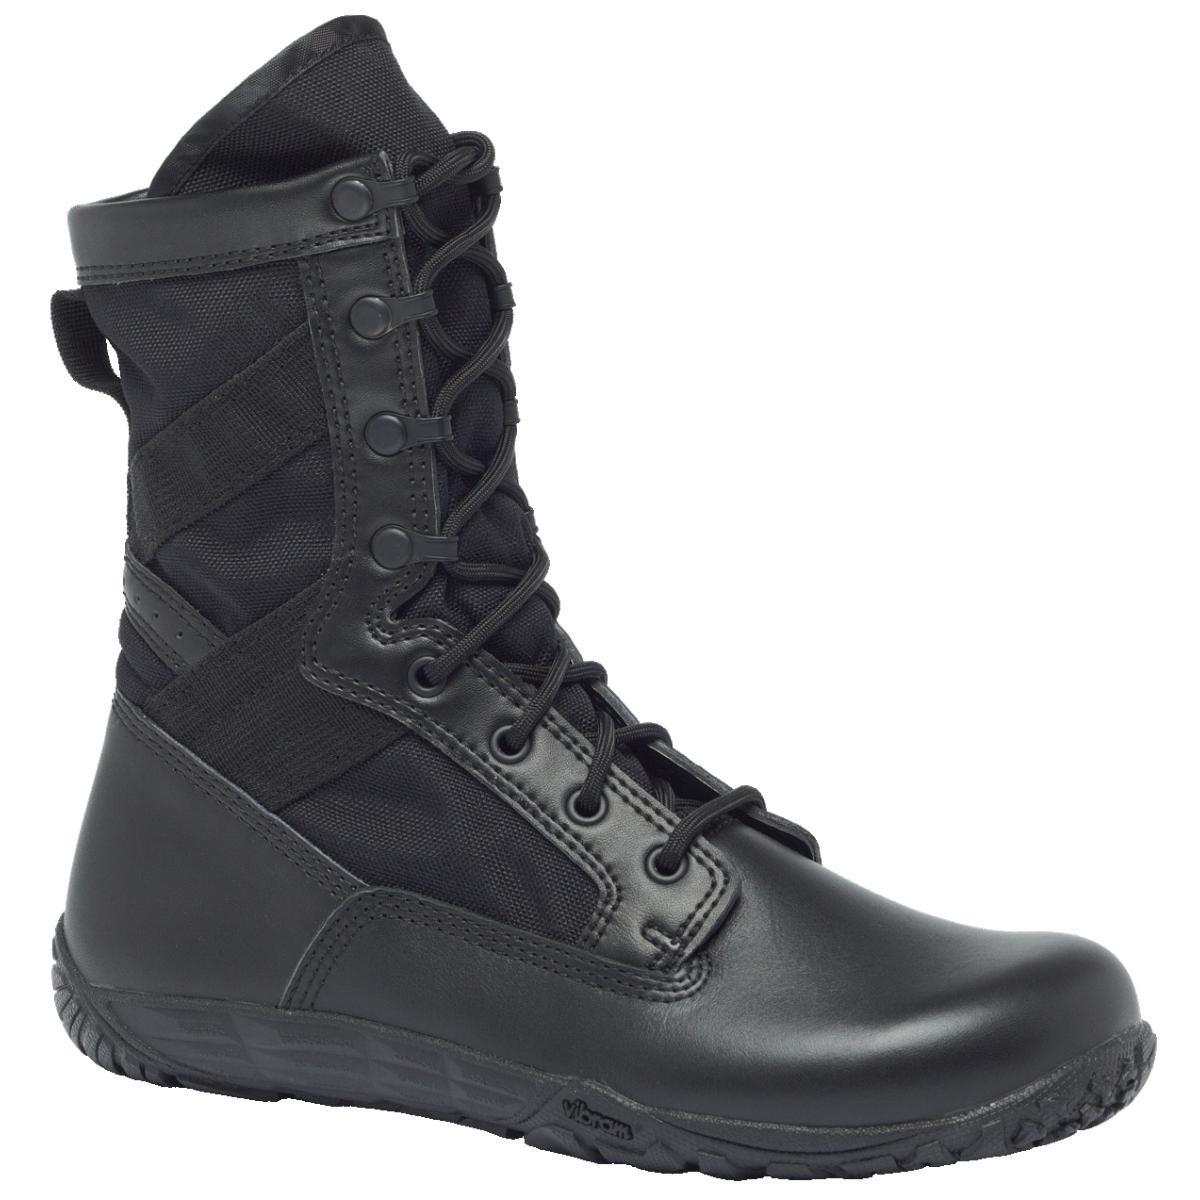 Belleville 102 Tactical Research Mini-Mil Athletic Black Boot